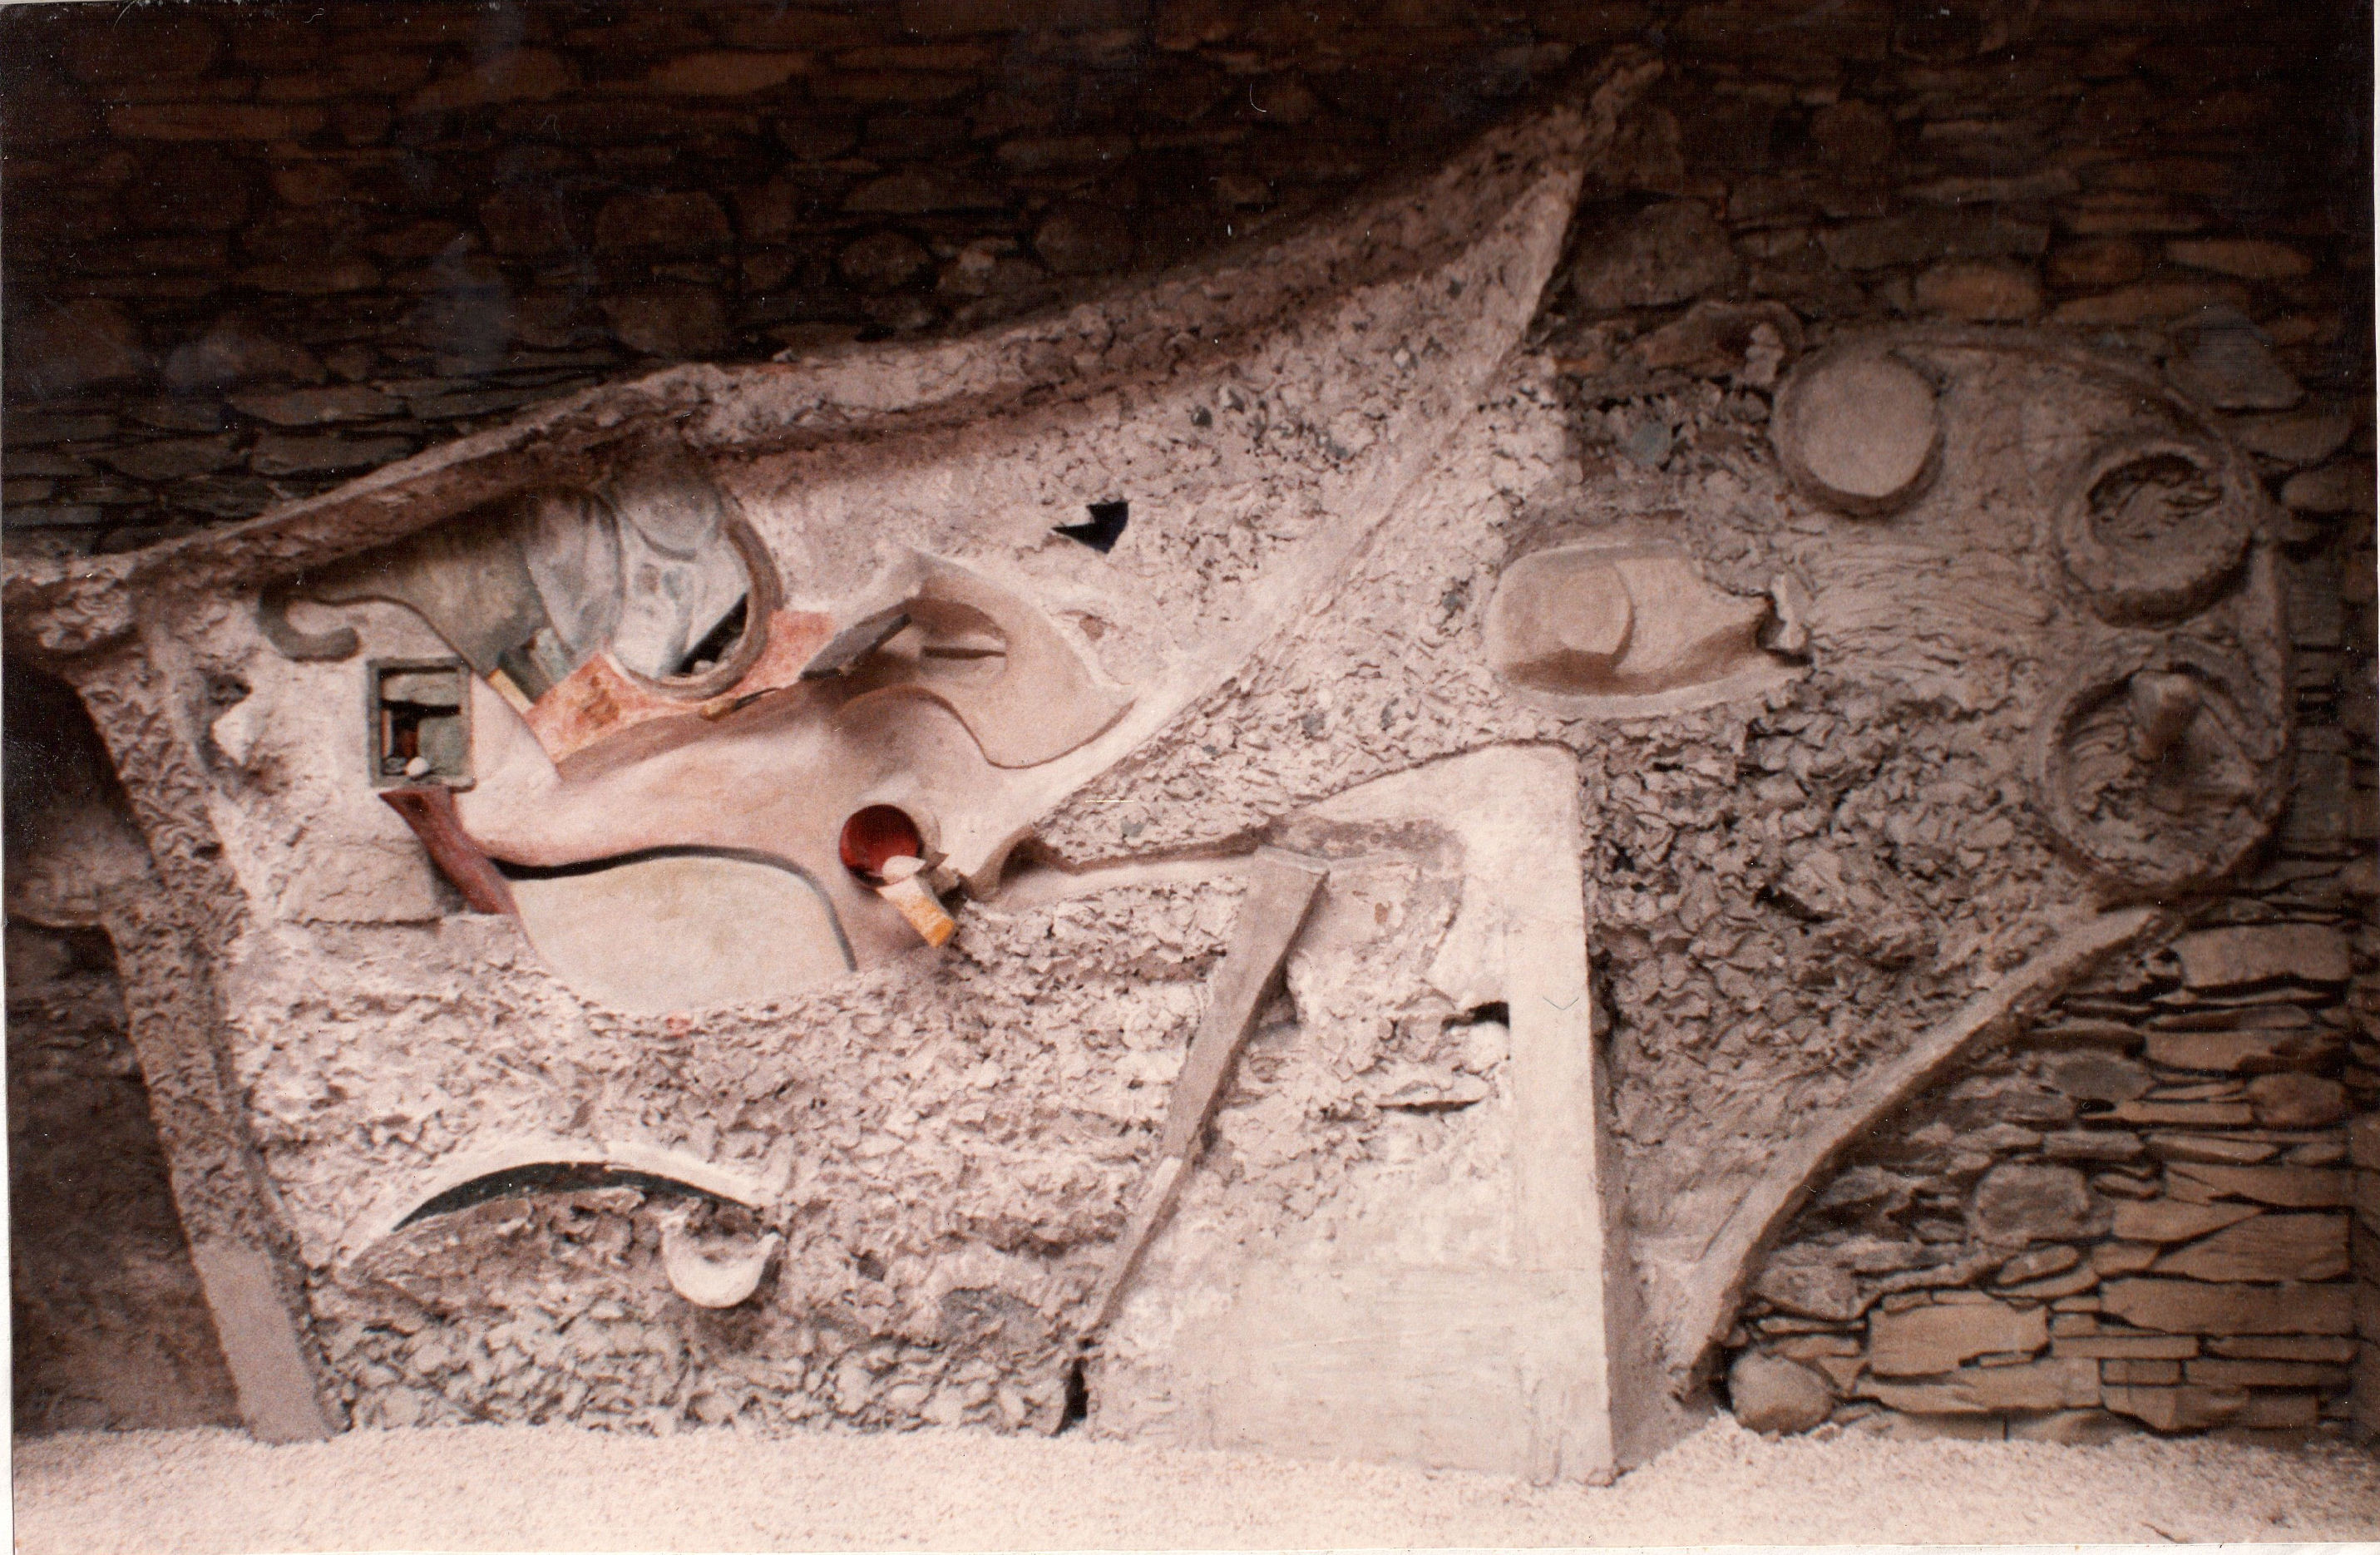 The last fragment of the Merz Barn, by Kurt Schwitters, Hatton Gallery, University of Newcastle.